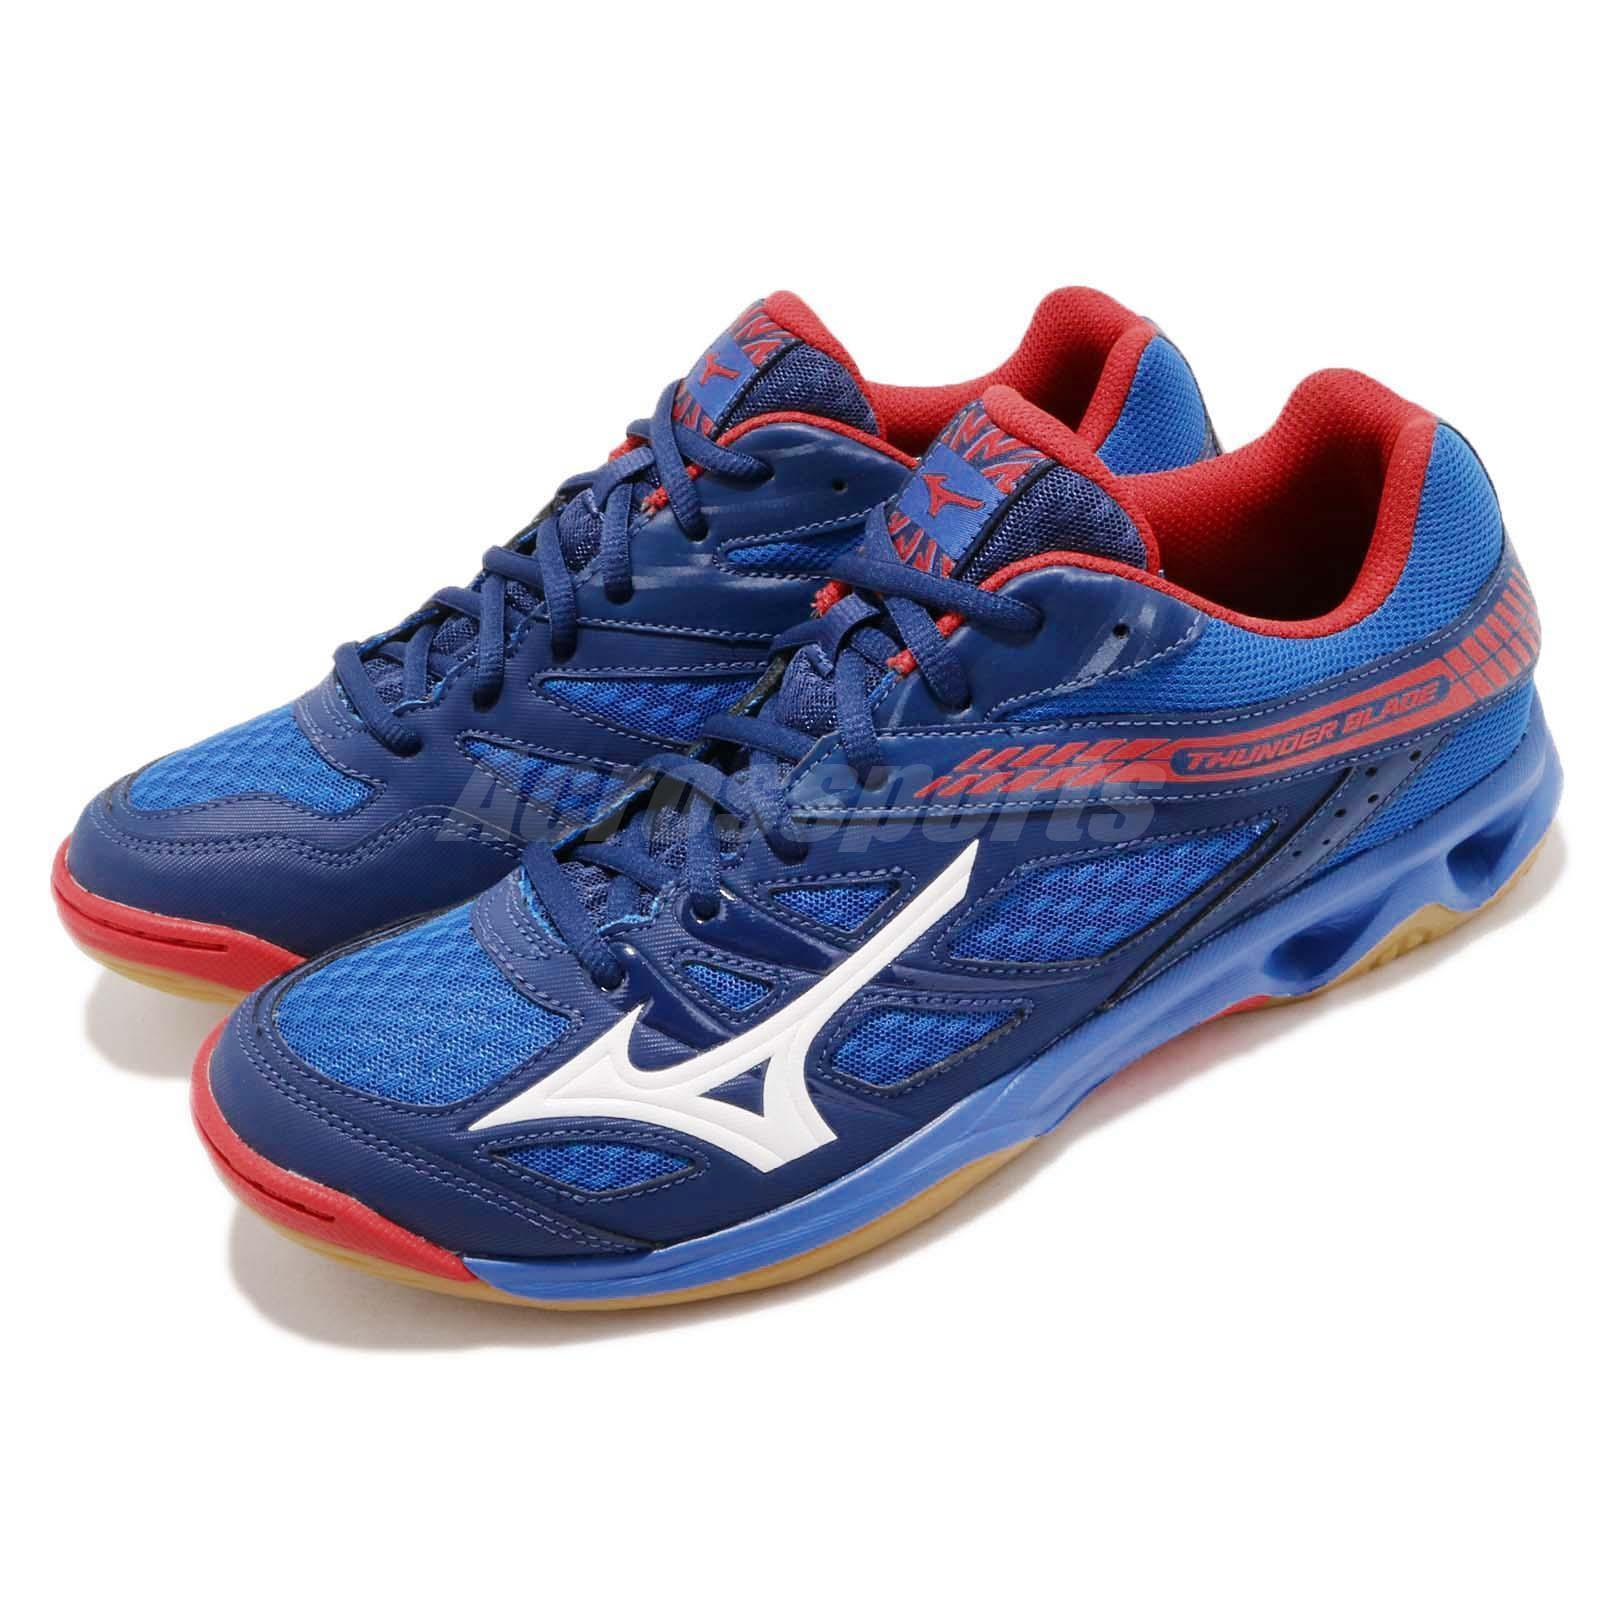 Sepatu voli/badminton  Mizuno V1GA177027	THUNDER BLADE - NAUTICAL BLUE WHITE HIGH RISK RED